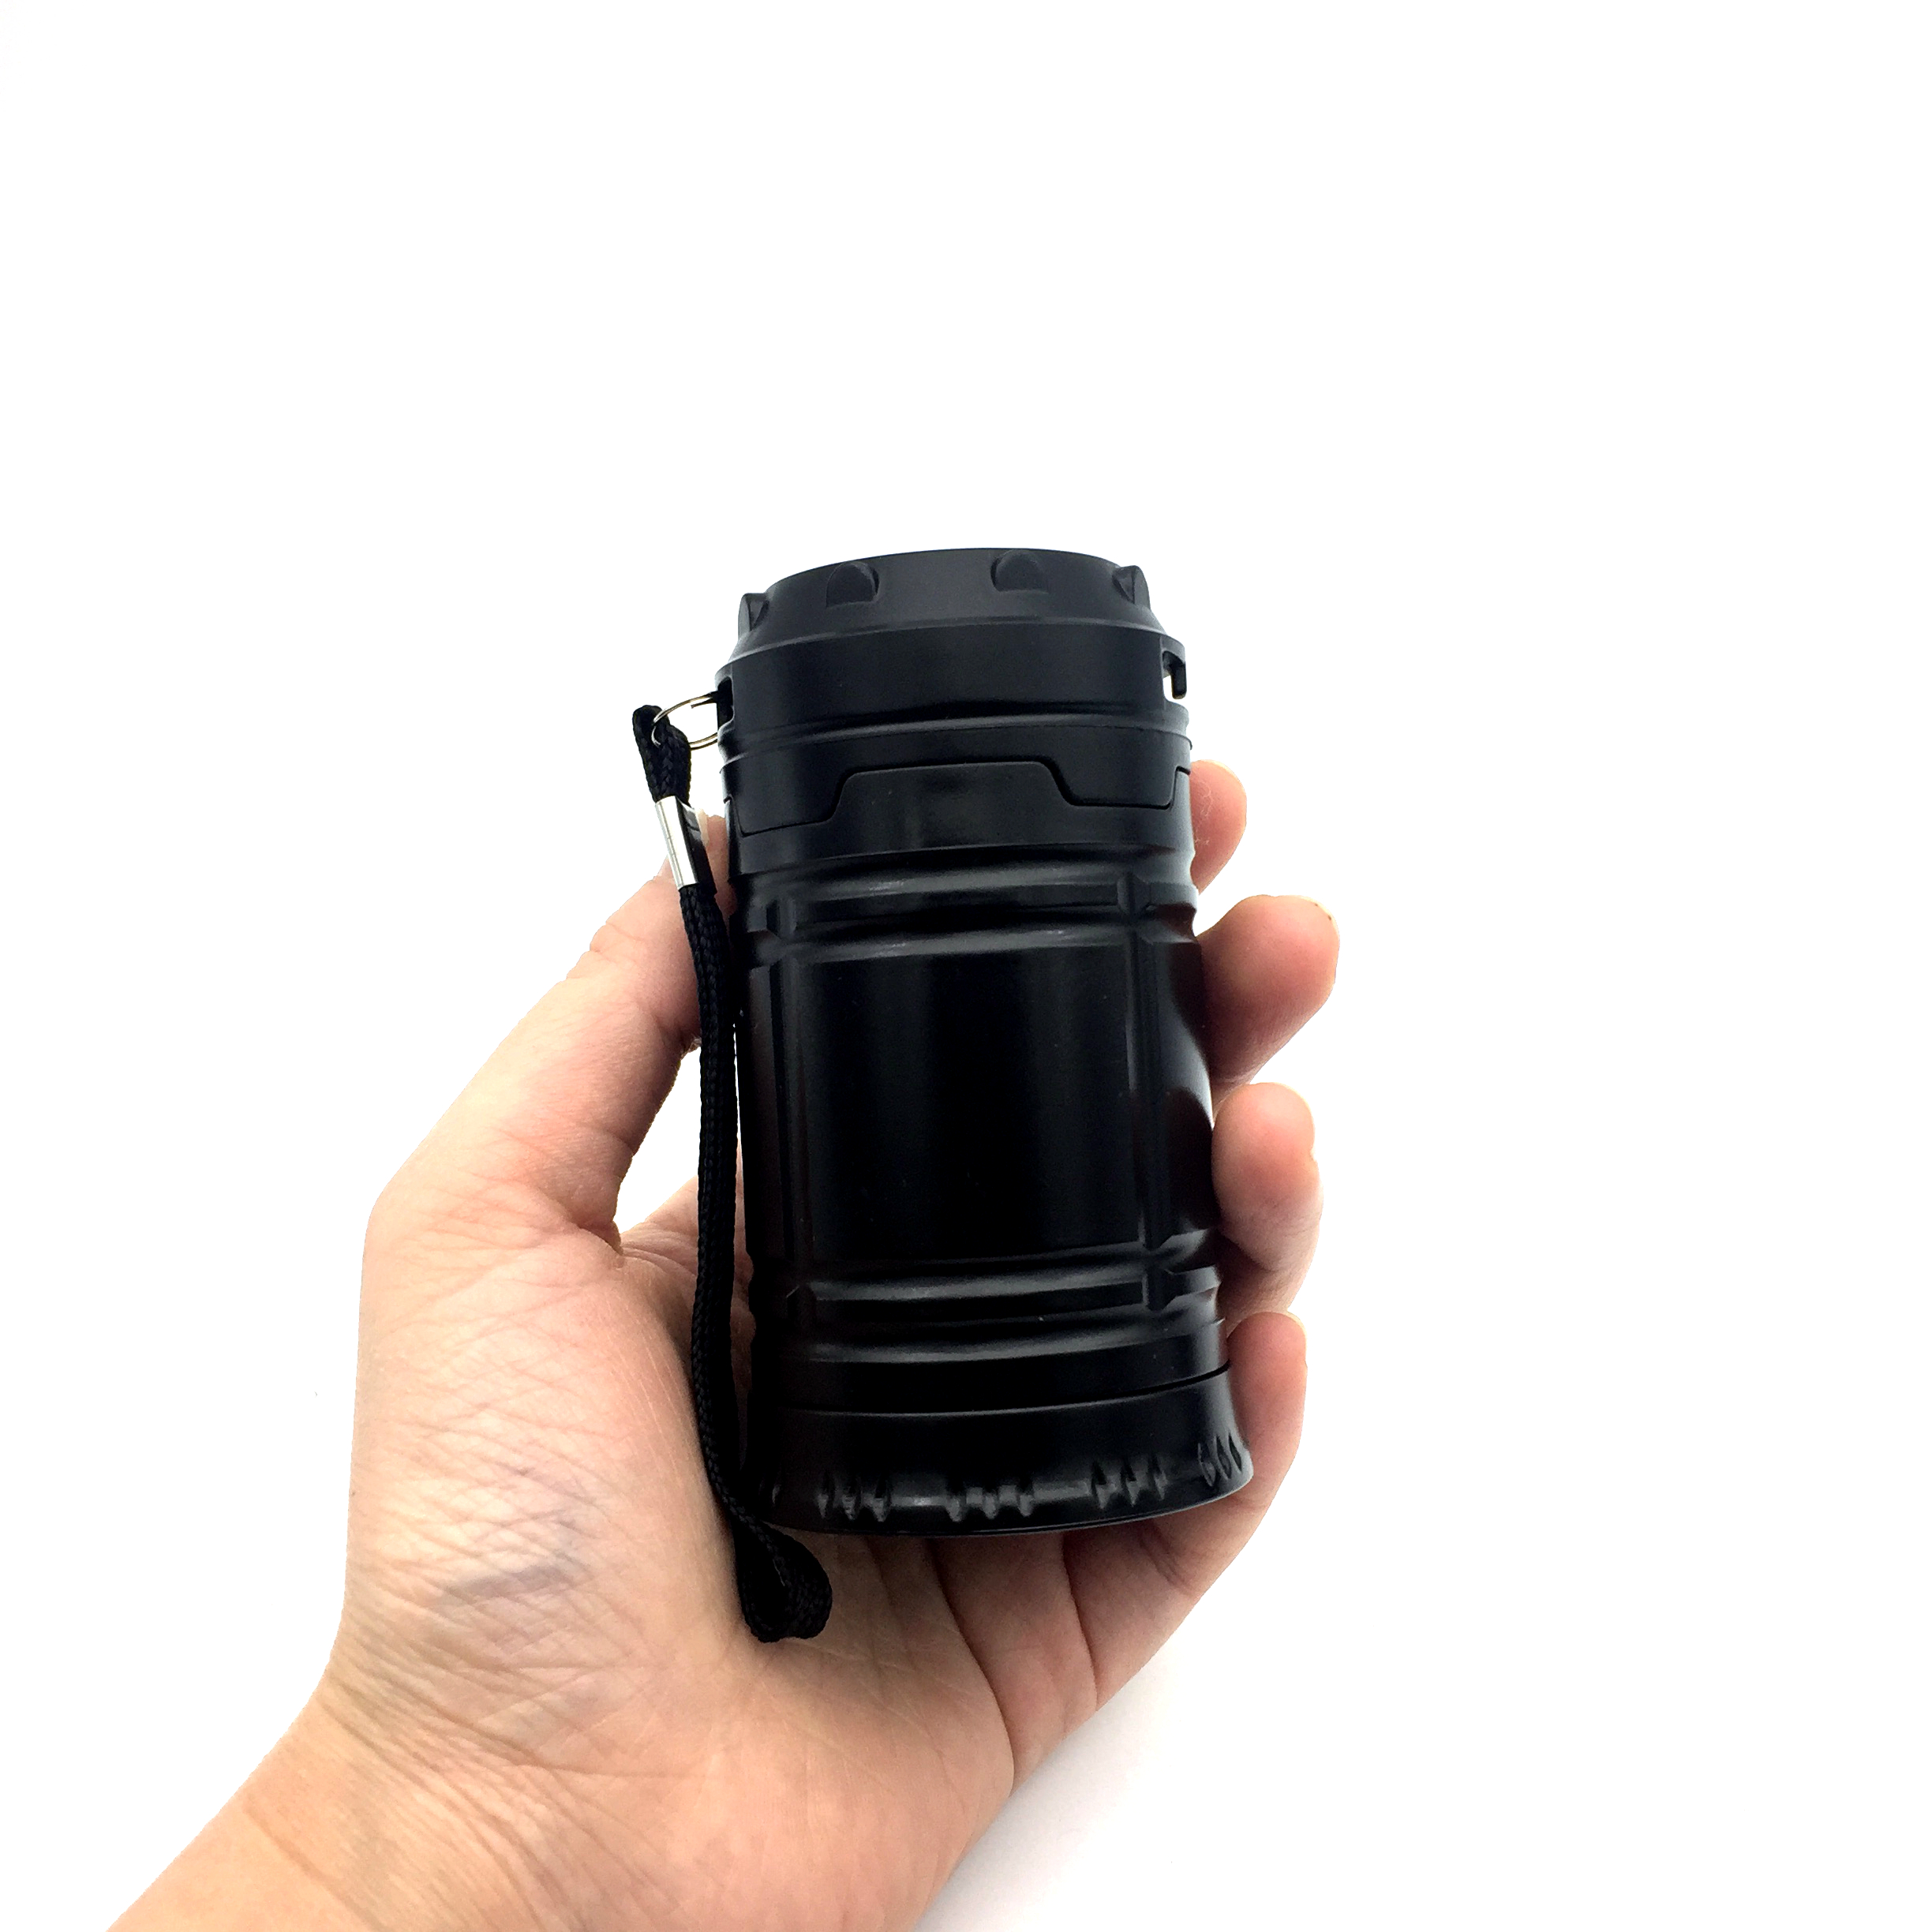 Купить с кэшбэком MingRay KB502 Cheap mini LED Lantern for outdoor camping aa Battery collapsible tent Lamp also multifunction Flashlight